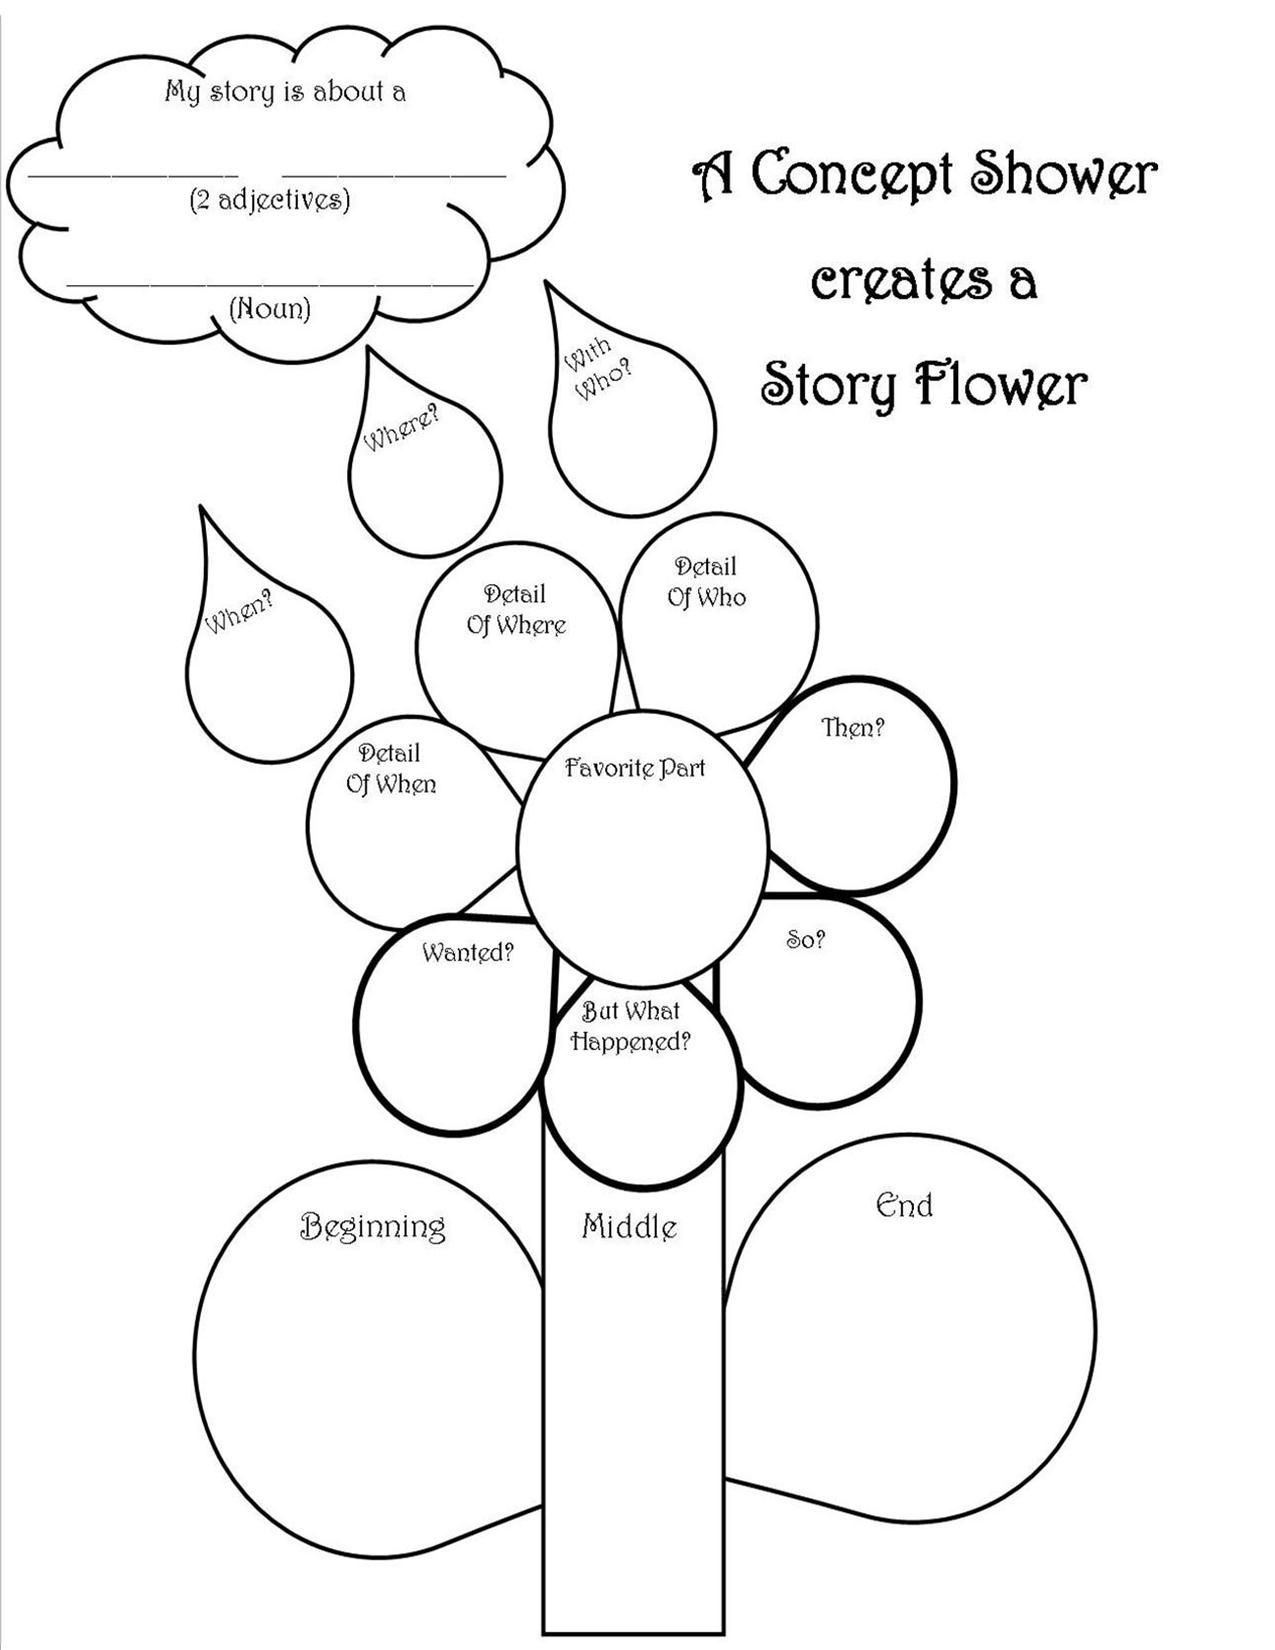 Ou Ow Worksheets 3rd Grade Creative Graphic organizer that Covers the Basics